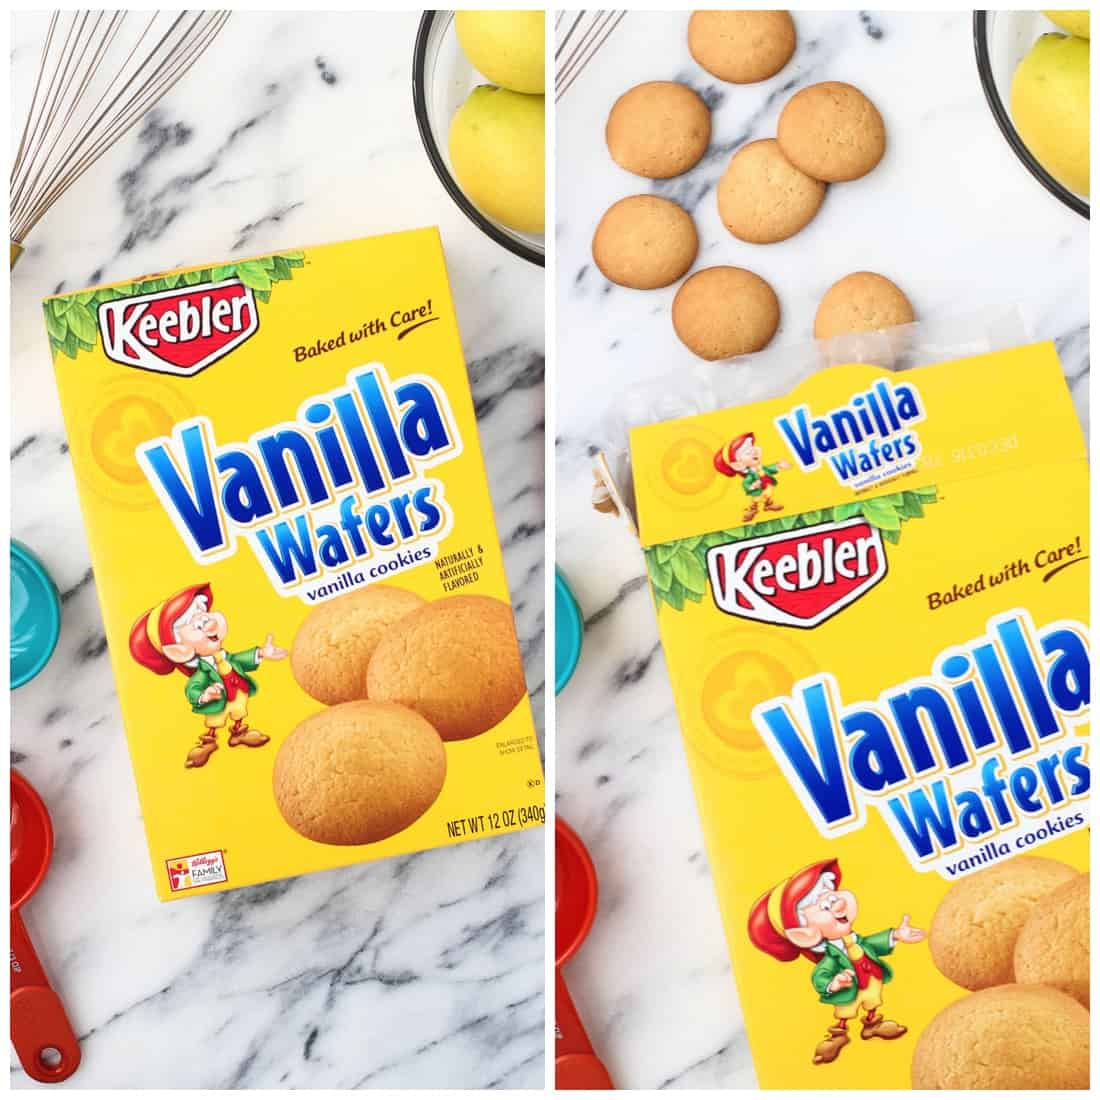 A box of Keebler Vanilla Wafers (left) and the wafers spilling out of the box (right).